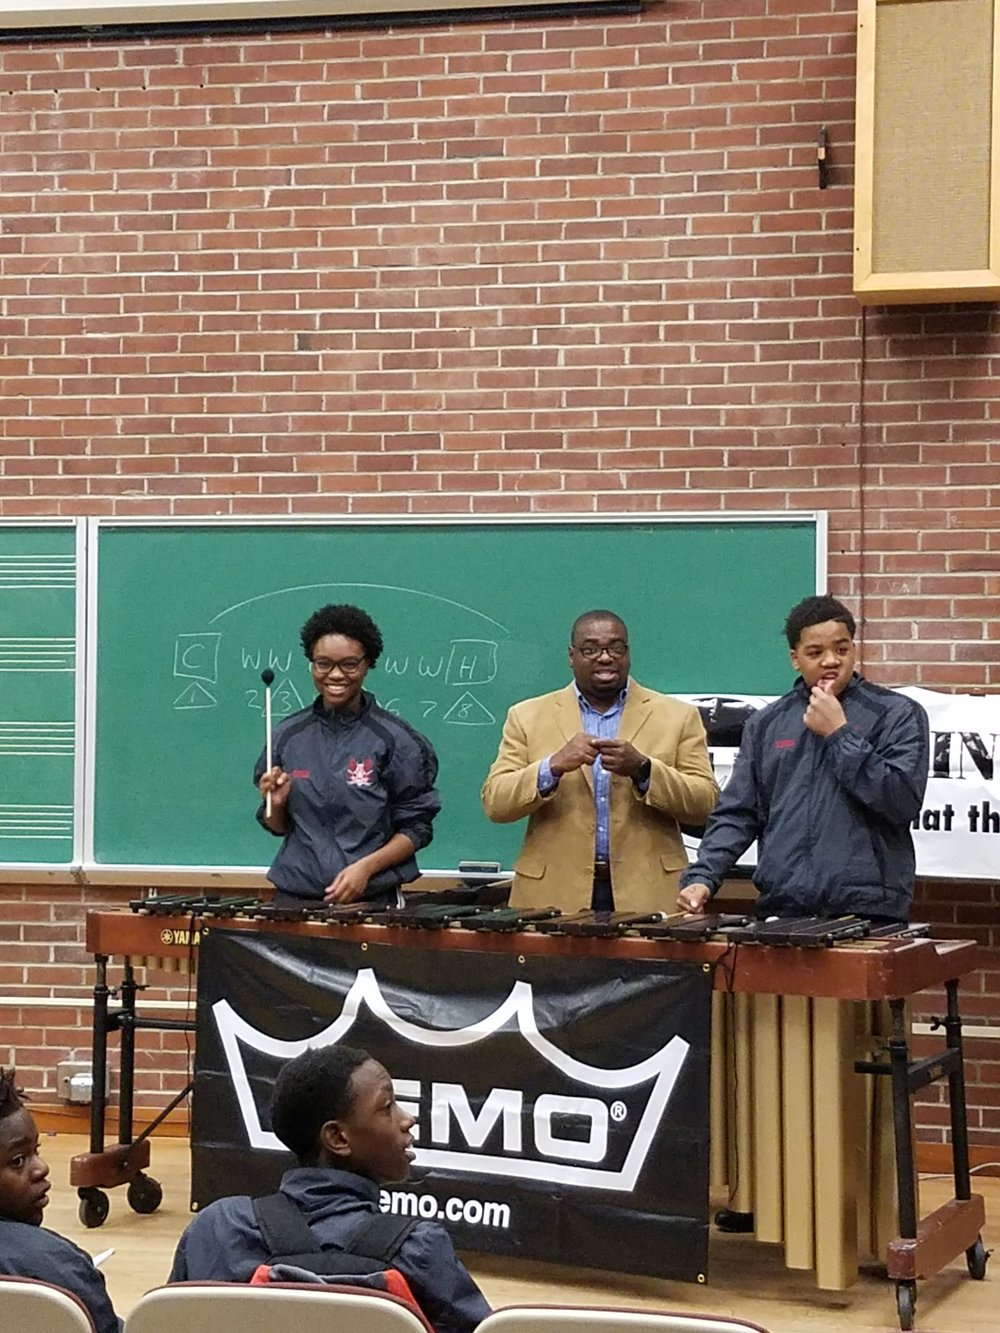 Dr. Daniel McCloud of Methodist University and participants at his mallet fundamentals clinic